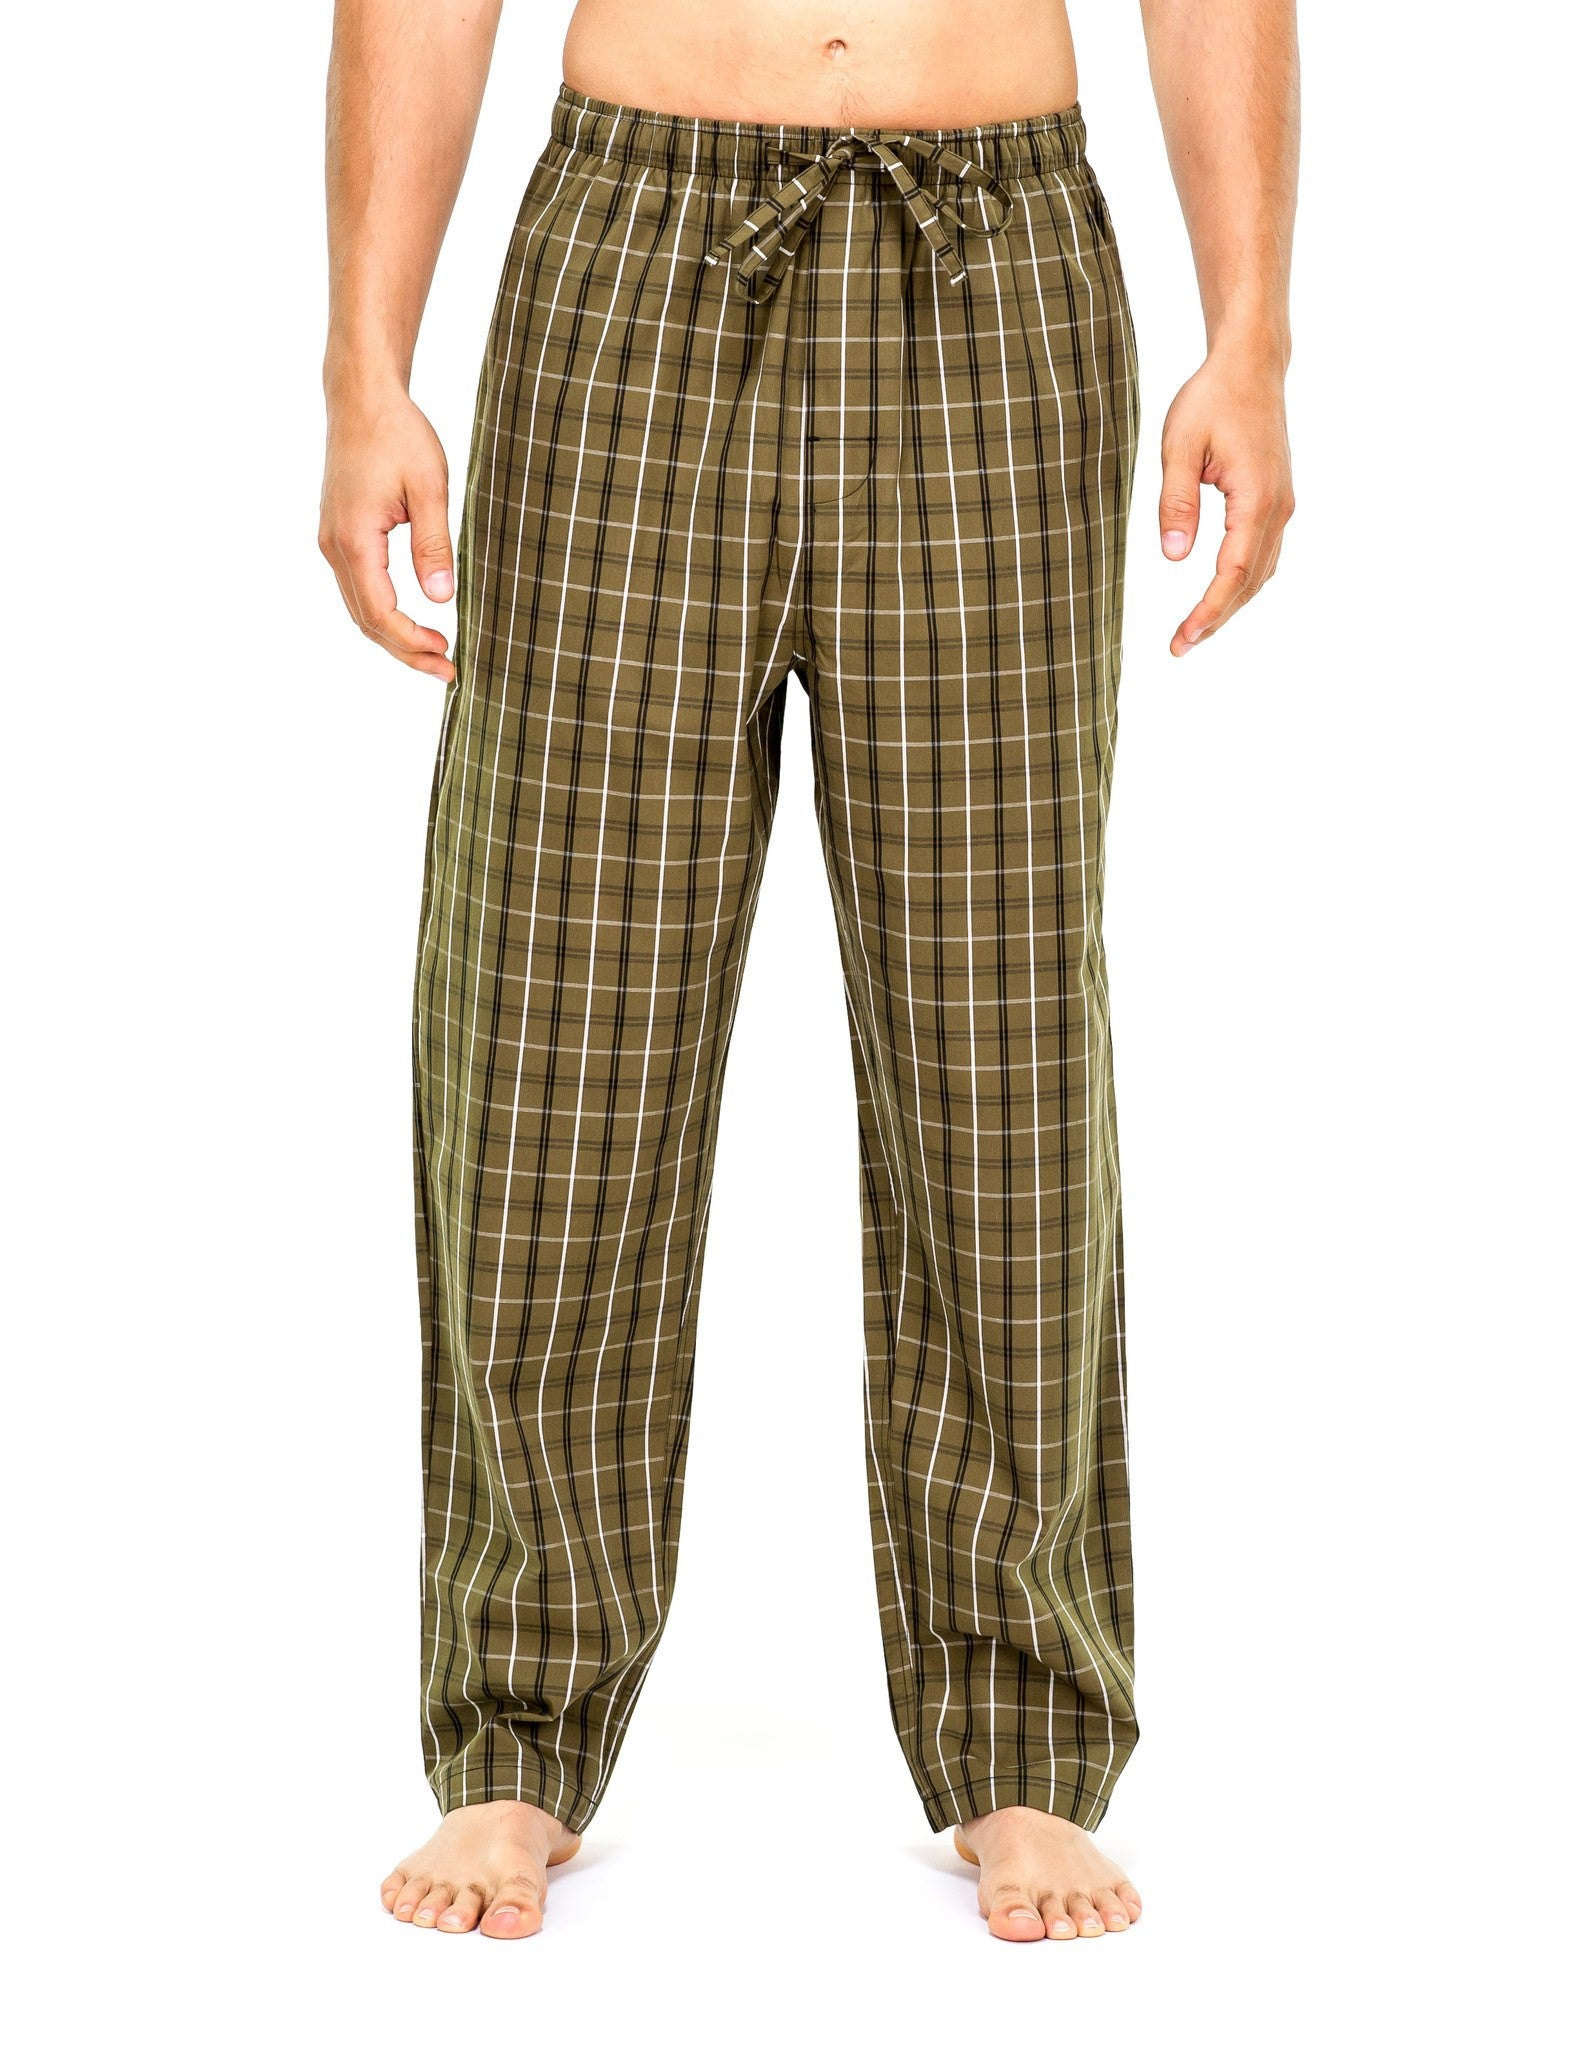 2-Pack (Dark Blue - Military Olive Plaid)